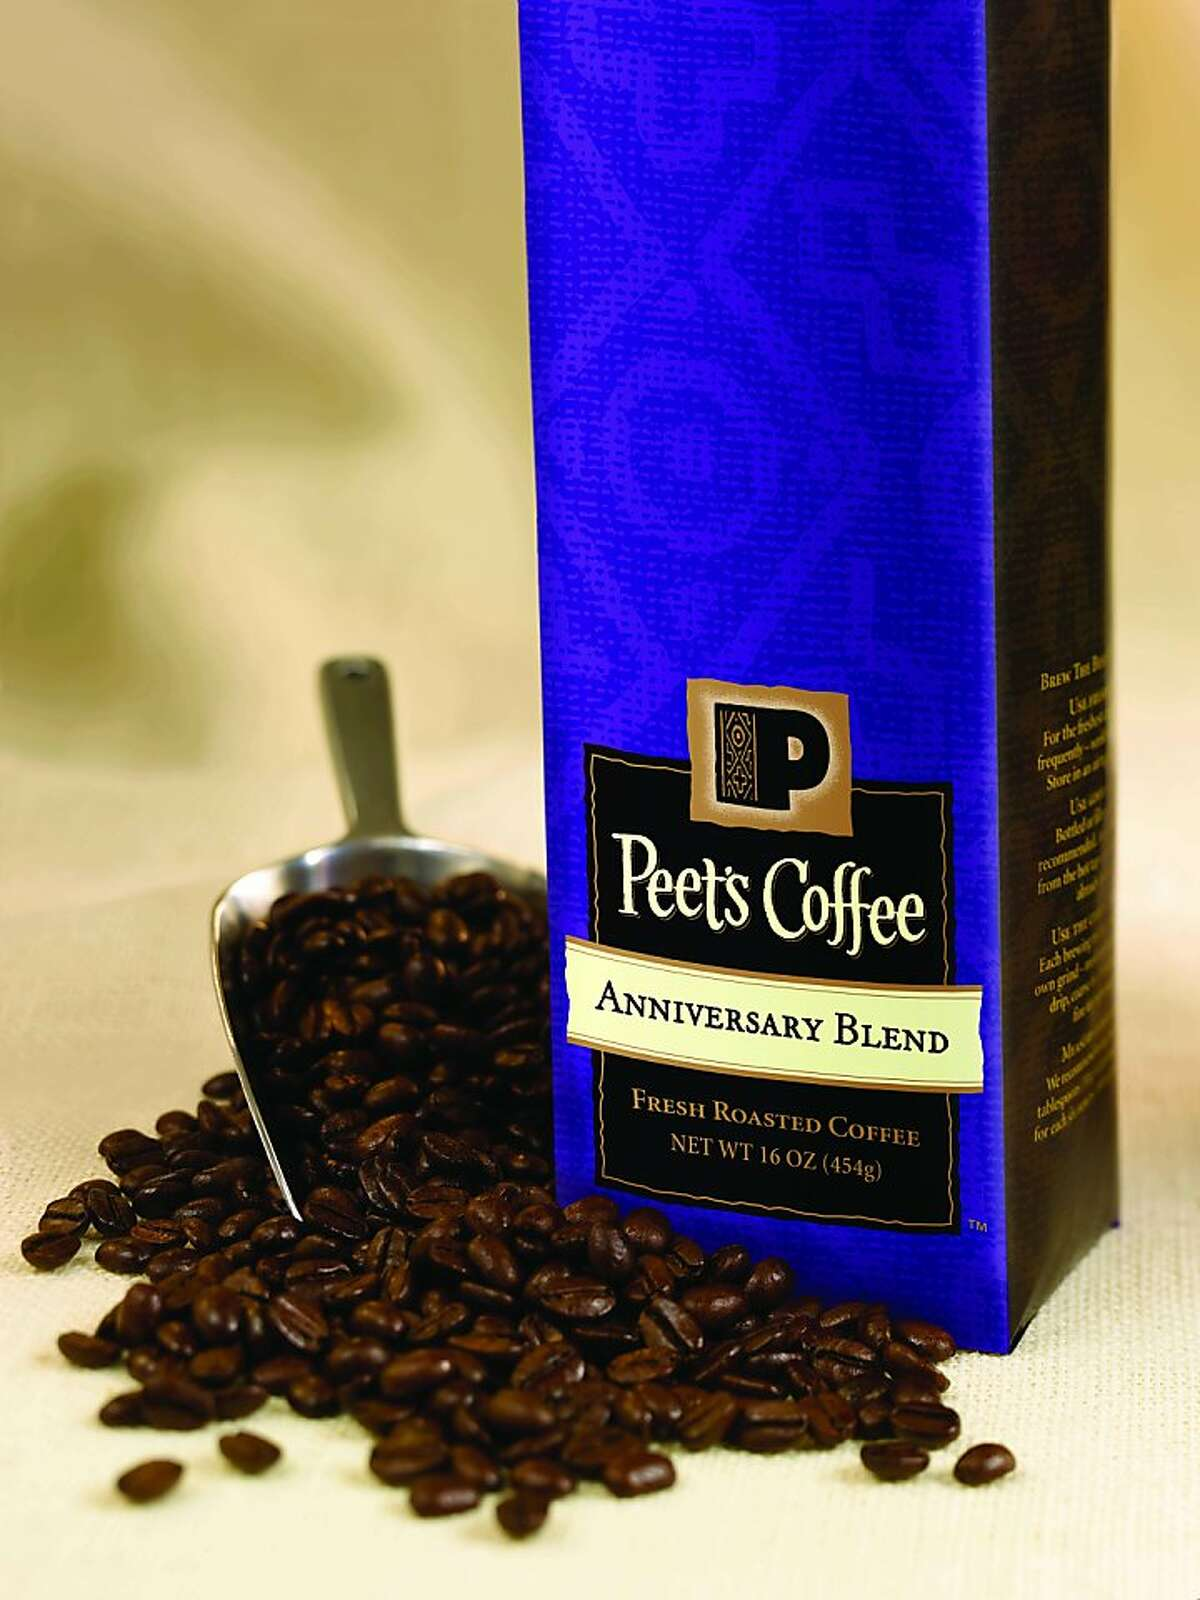 Peet's Anniversary Blend 2011. The faster-growing, more profitable half of Peet's Coffee is it's direct-to-store distribution operation, which sells packaged coffee to grocery and club storesnationwide.